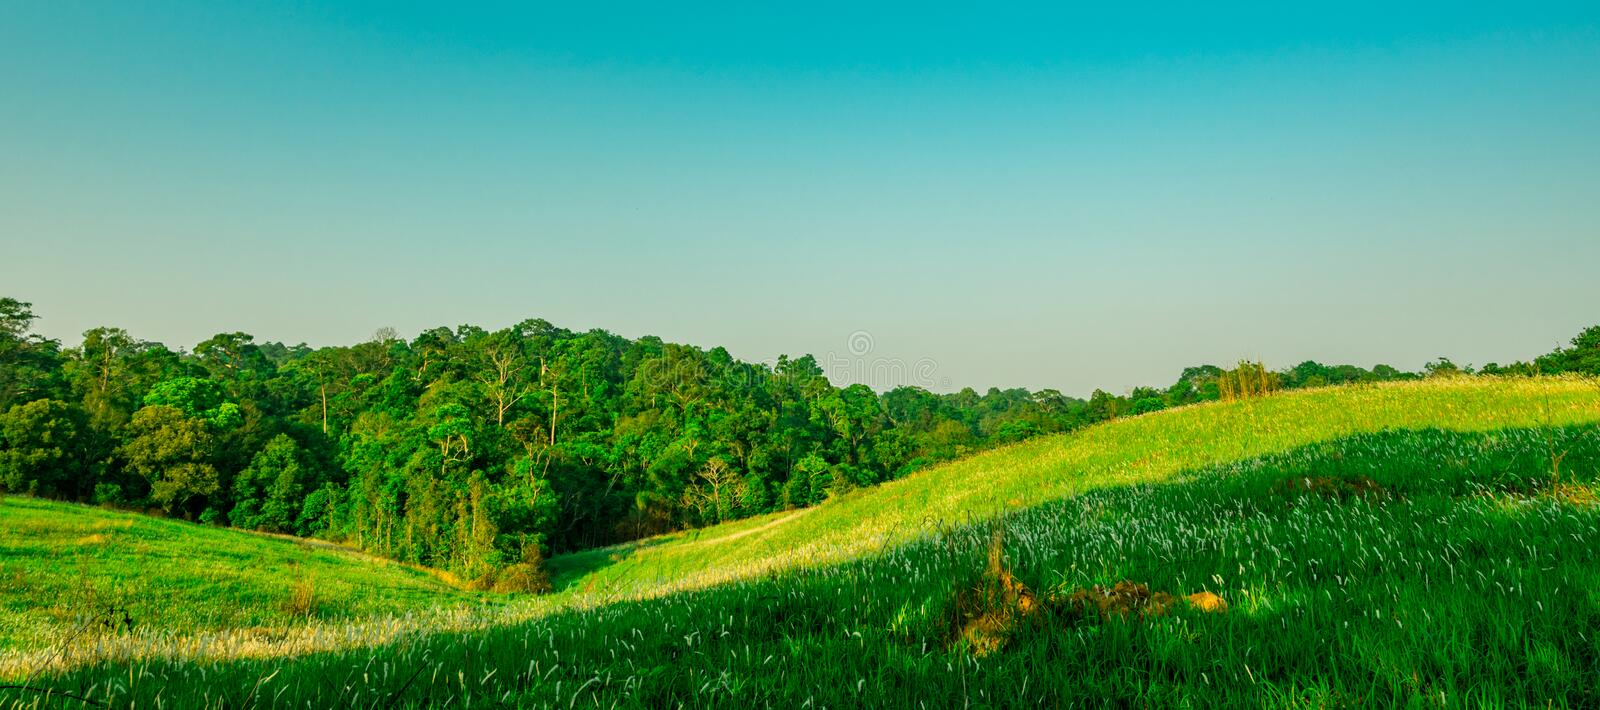 Beautiful rural landscape of green grass field with white flowers on clear blue sky background in the morning on sunshine day. stock photo